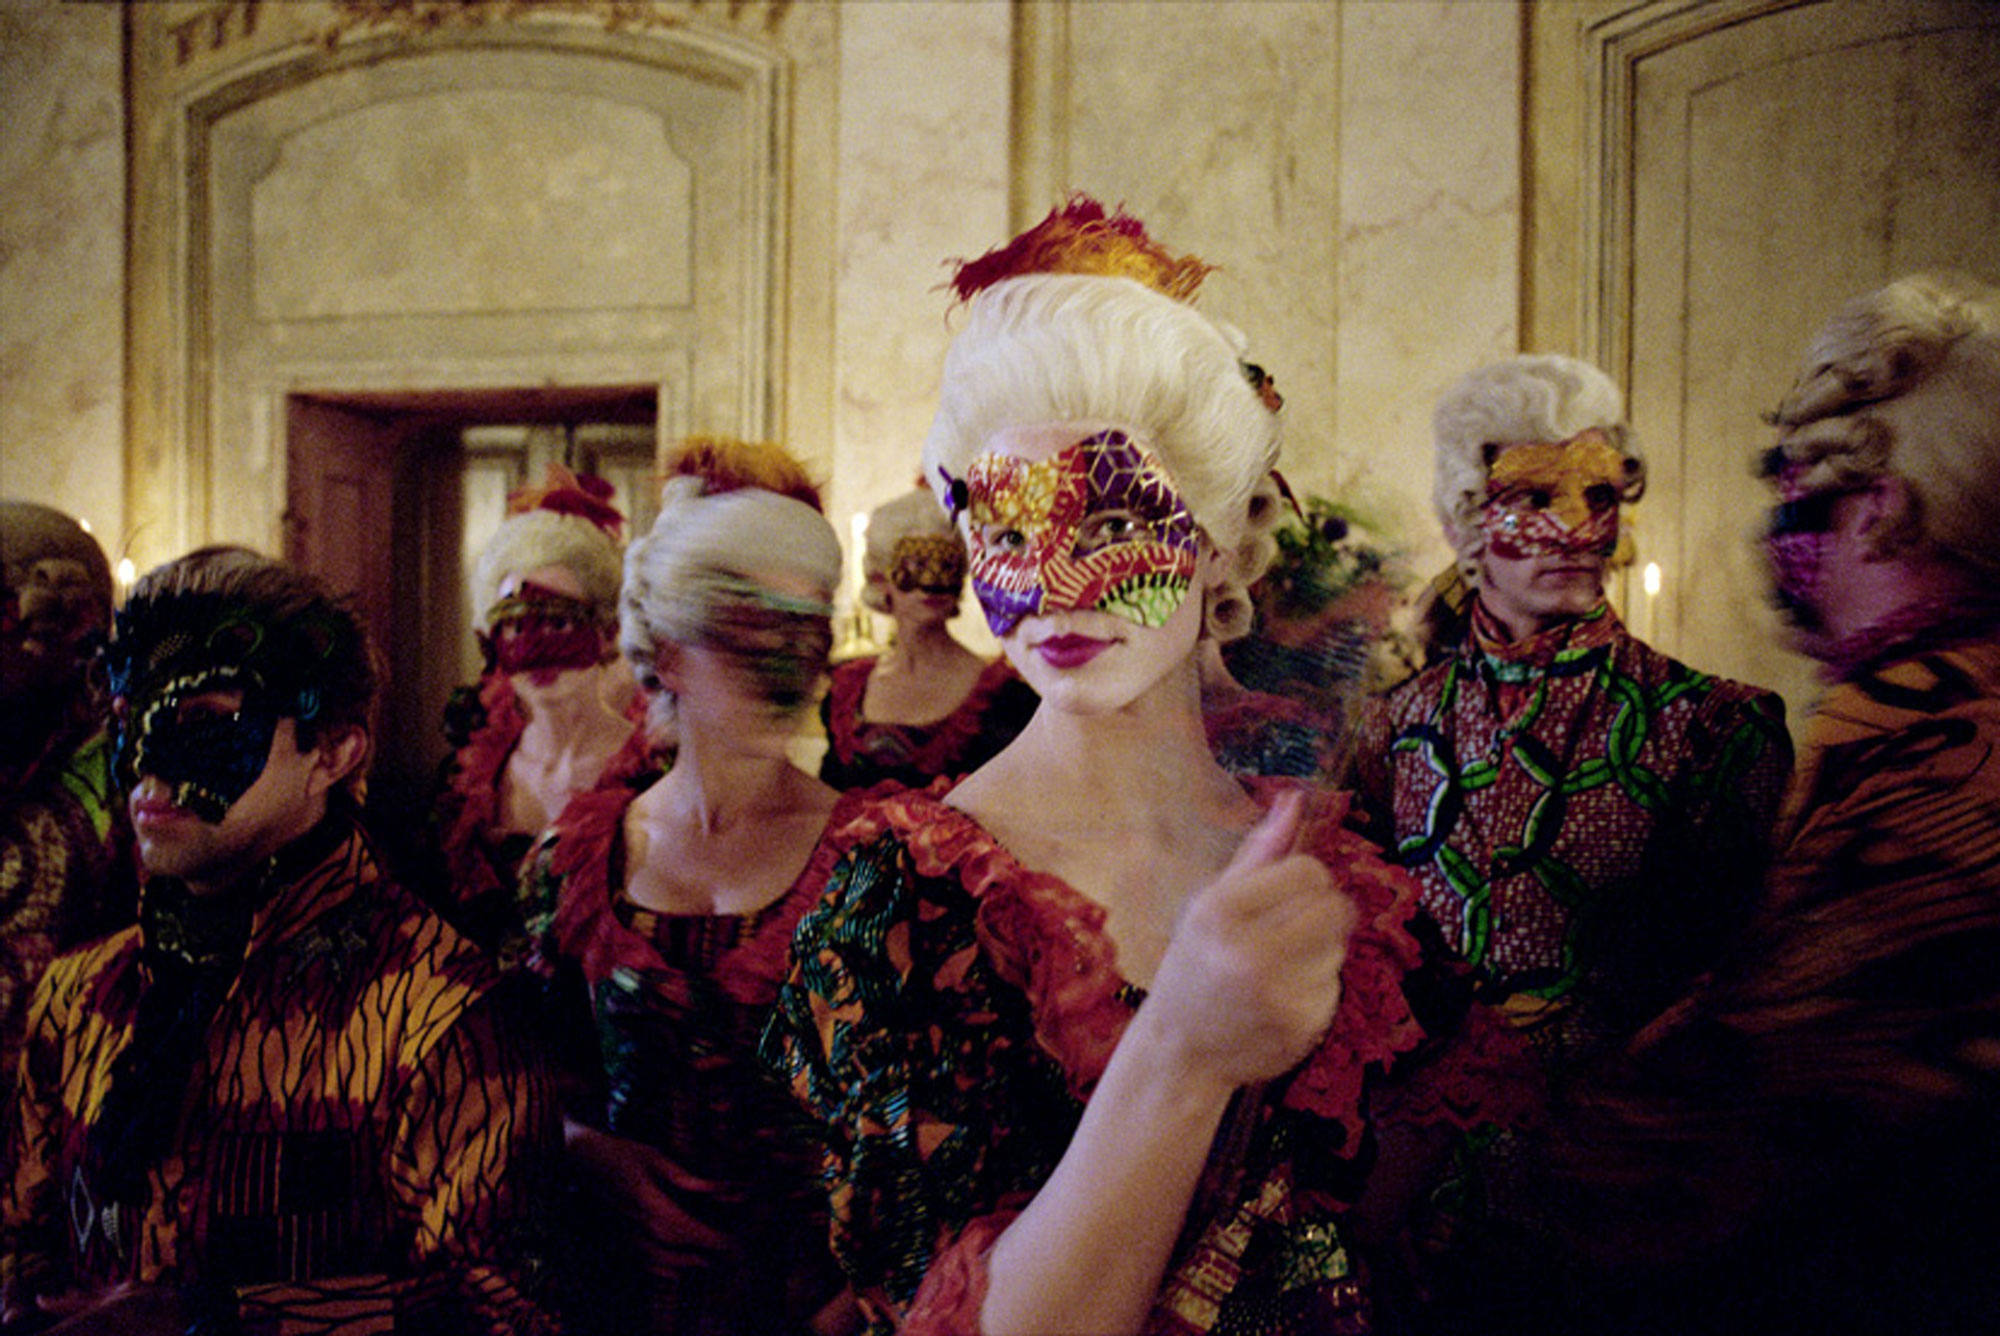 A masked woman at a masquerade